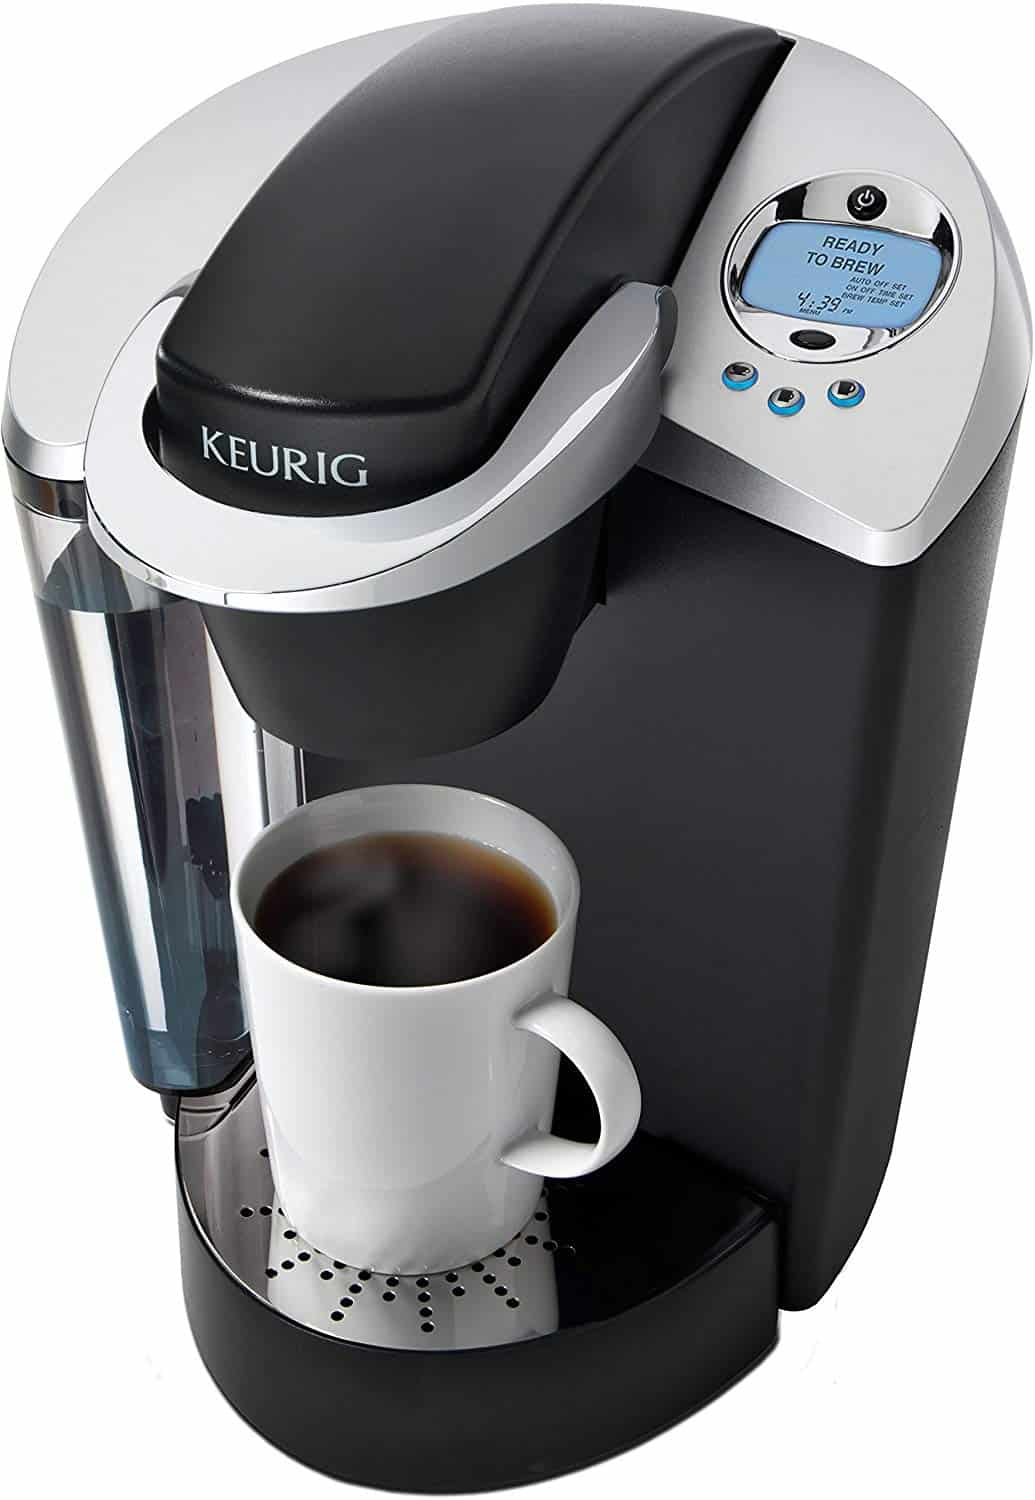 Keurig K60/K65 Special Edition & Signature Brewers, Single-Cup